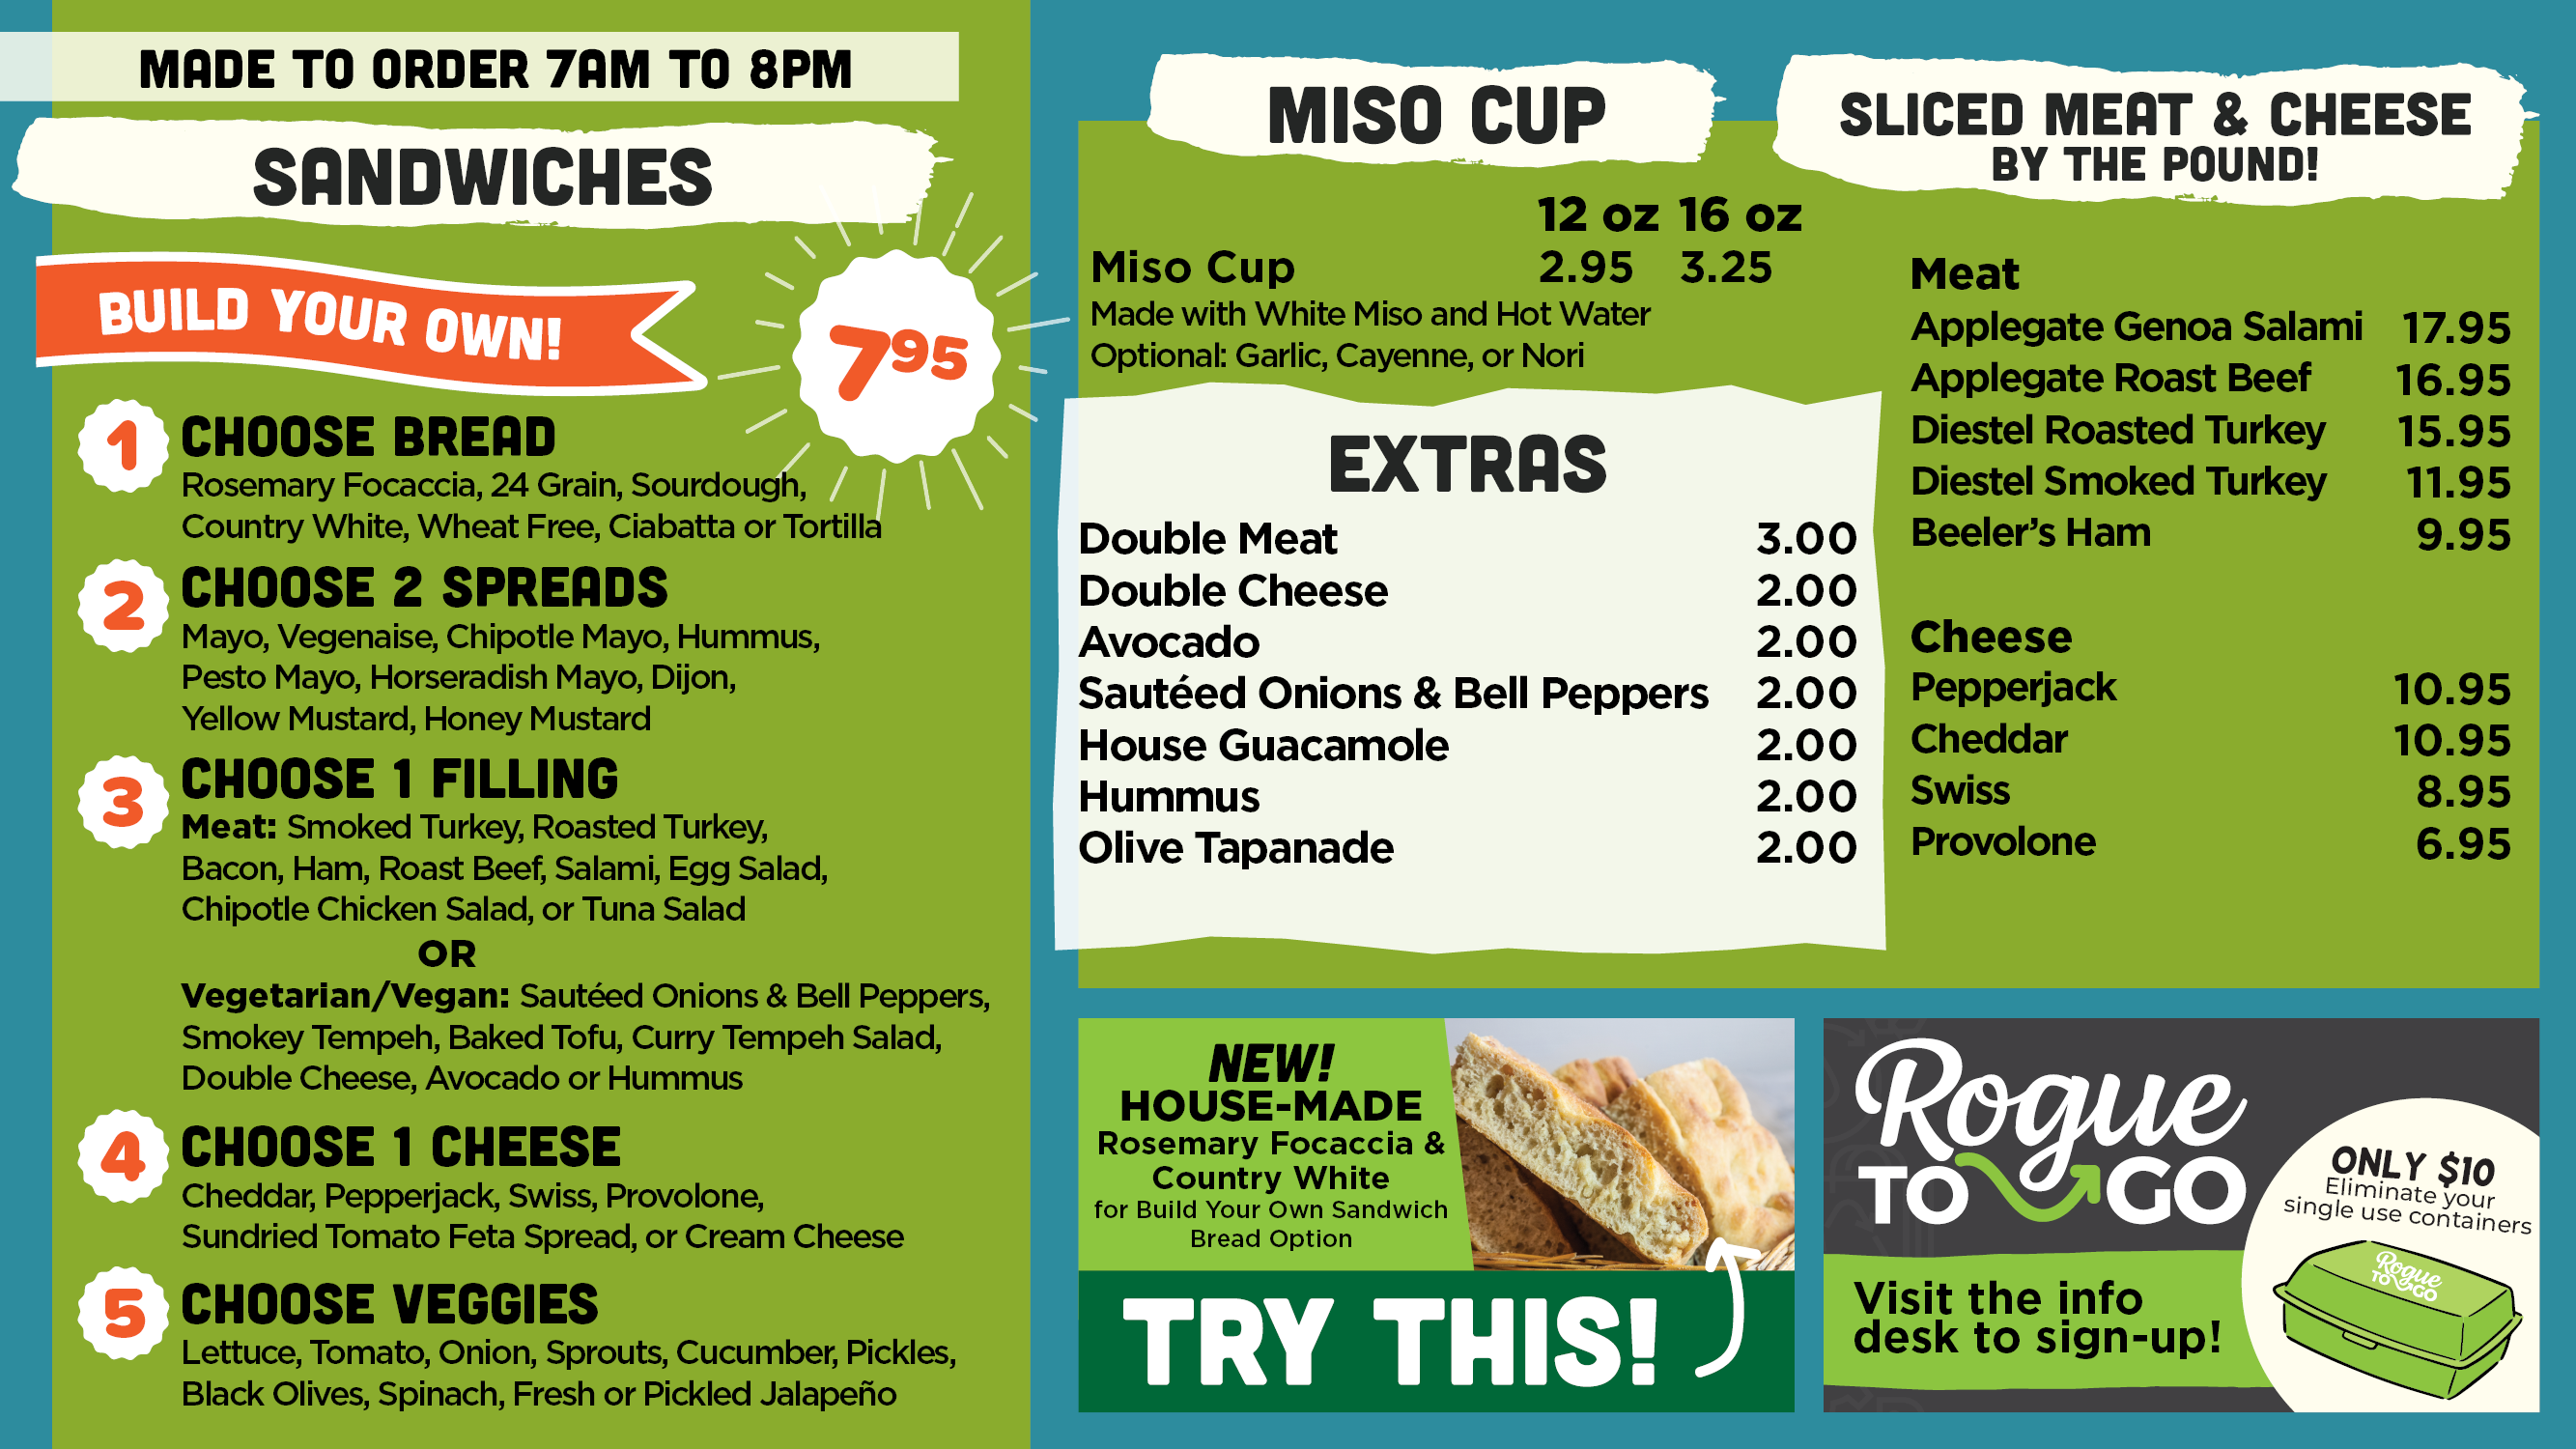 Made to Order Sandwich menu